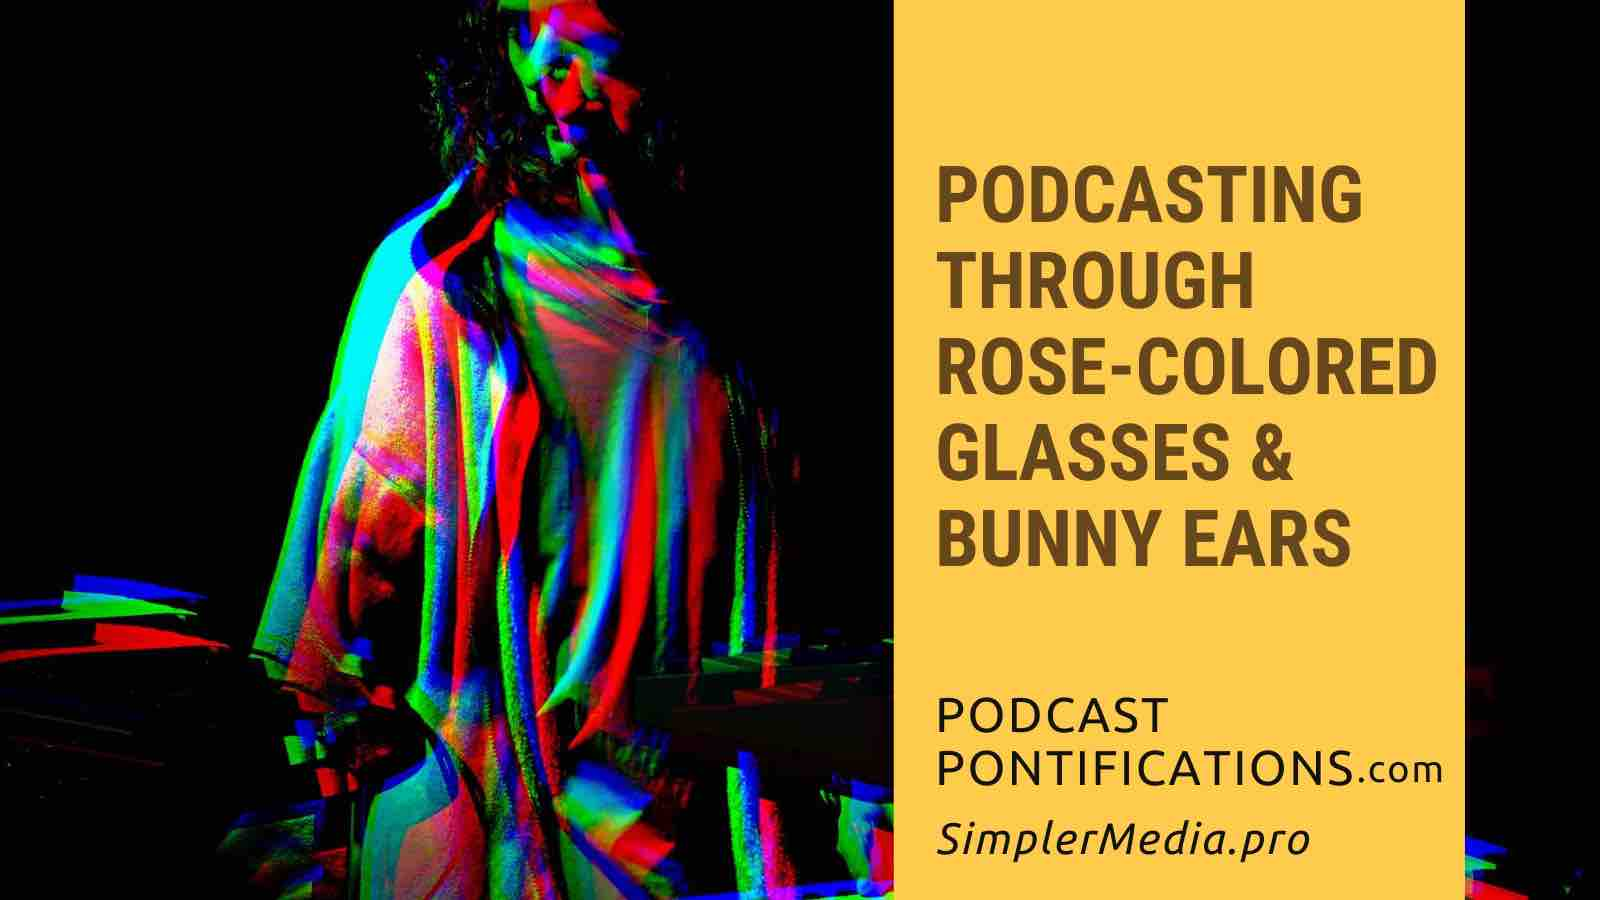 Podcasting Through Rose-Colored Glasses & Bunny Ears